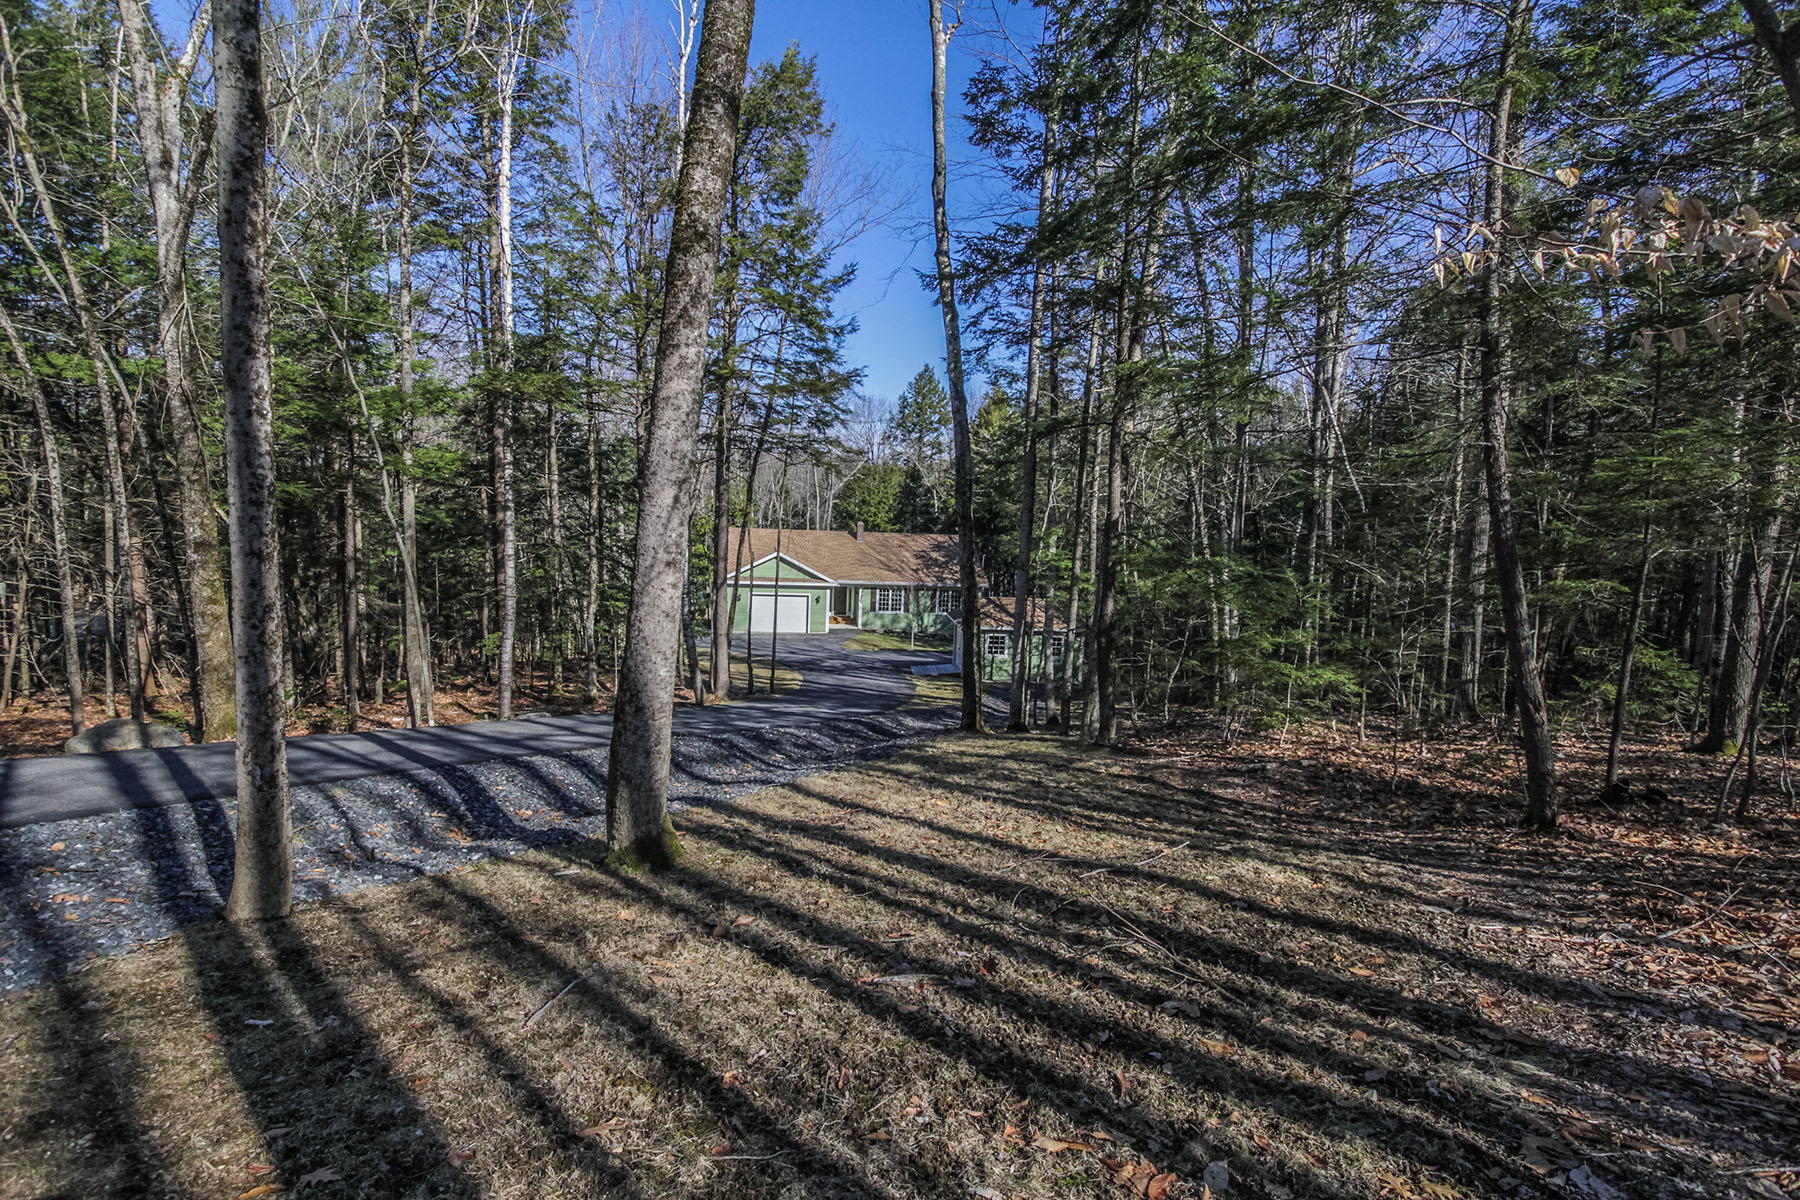 Single Family Home for Sale at Evergreen Way 1 Evergreen Way Gardiner, Maine, 04345 United States